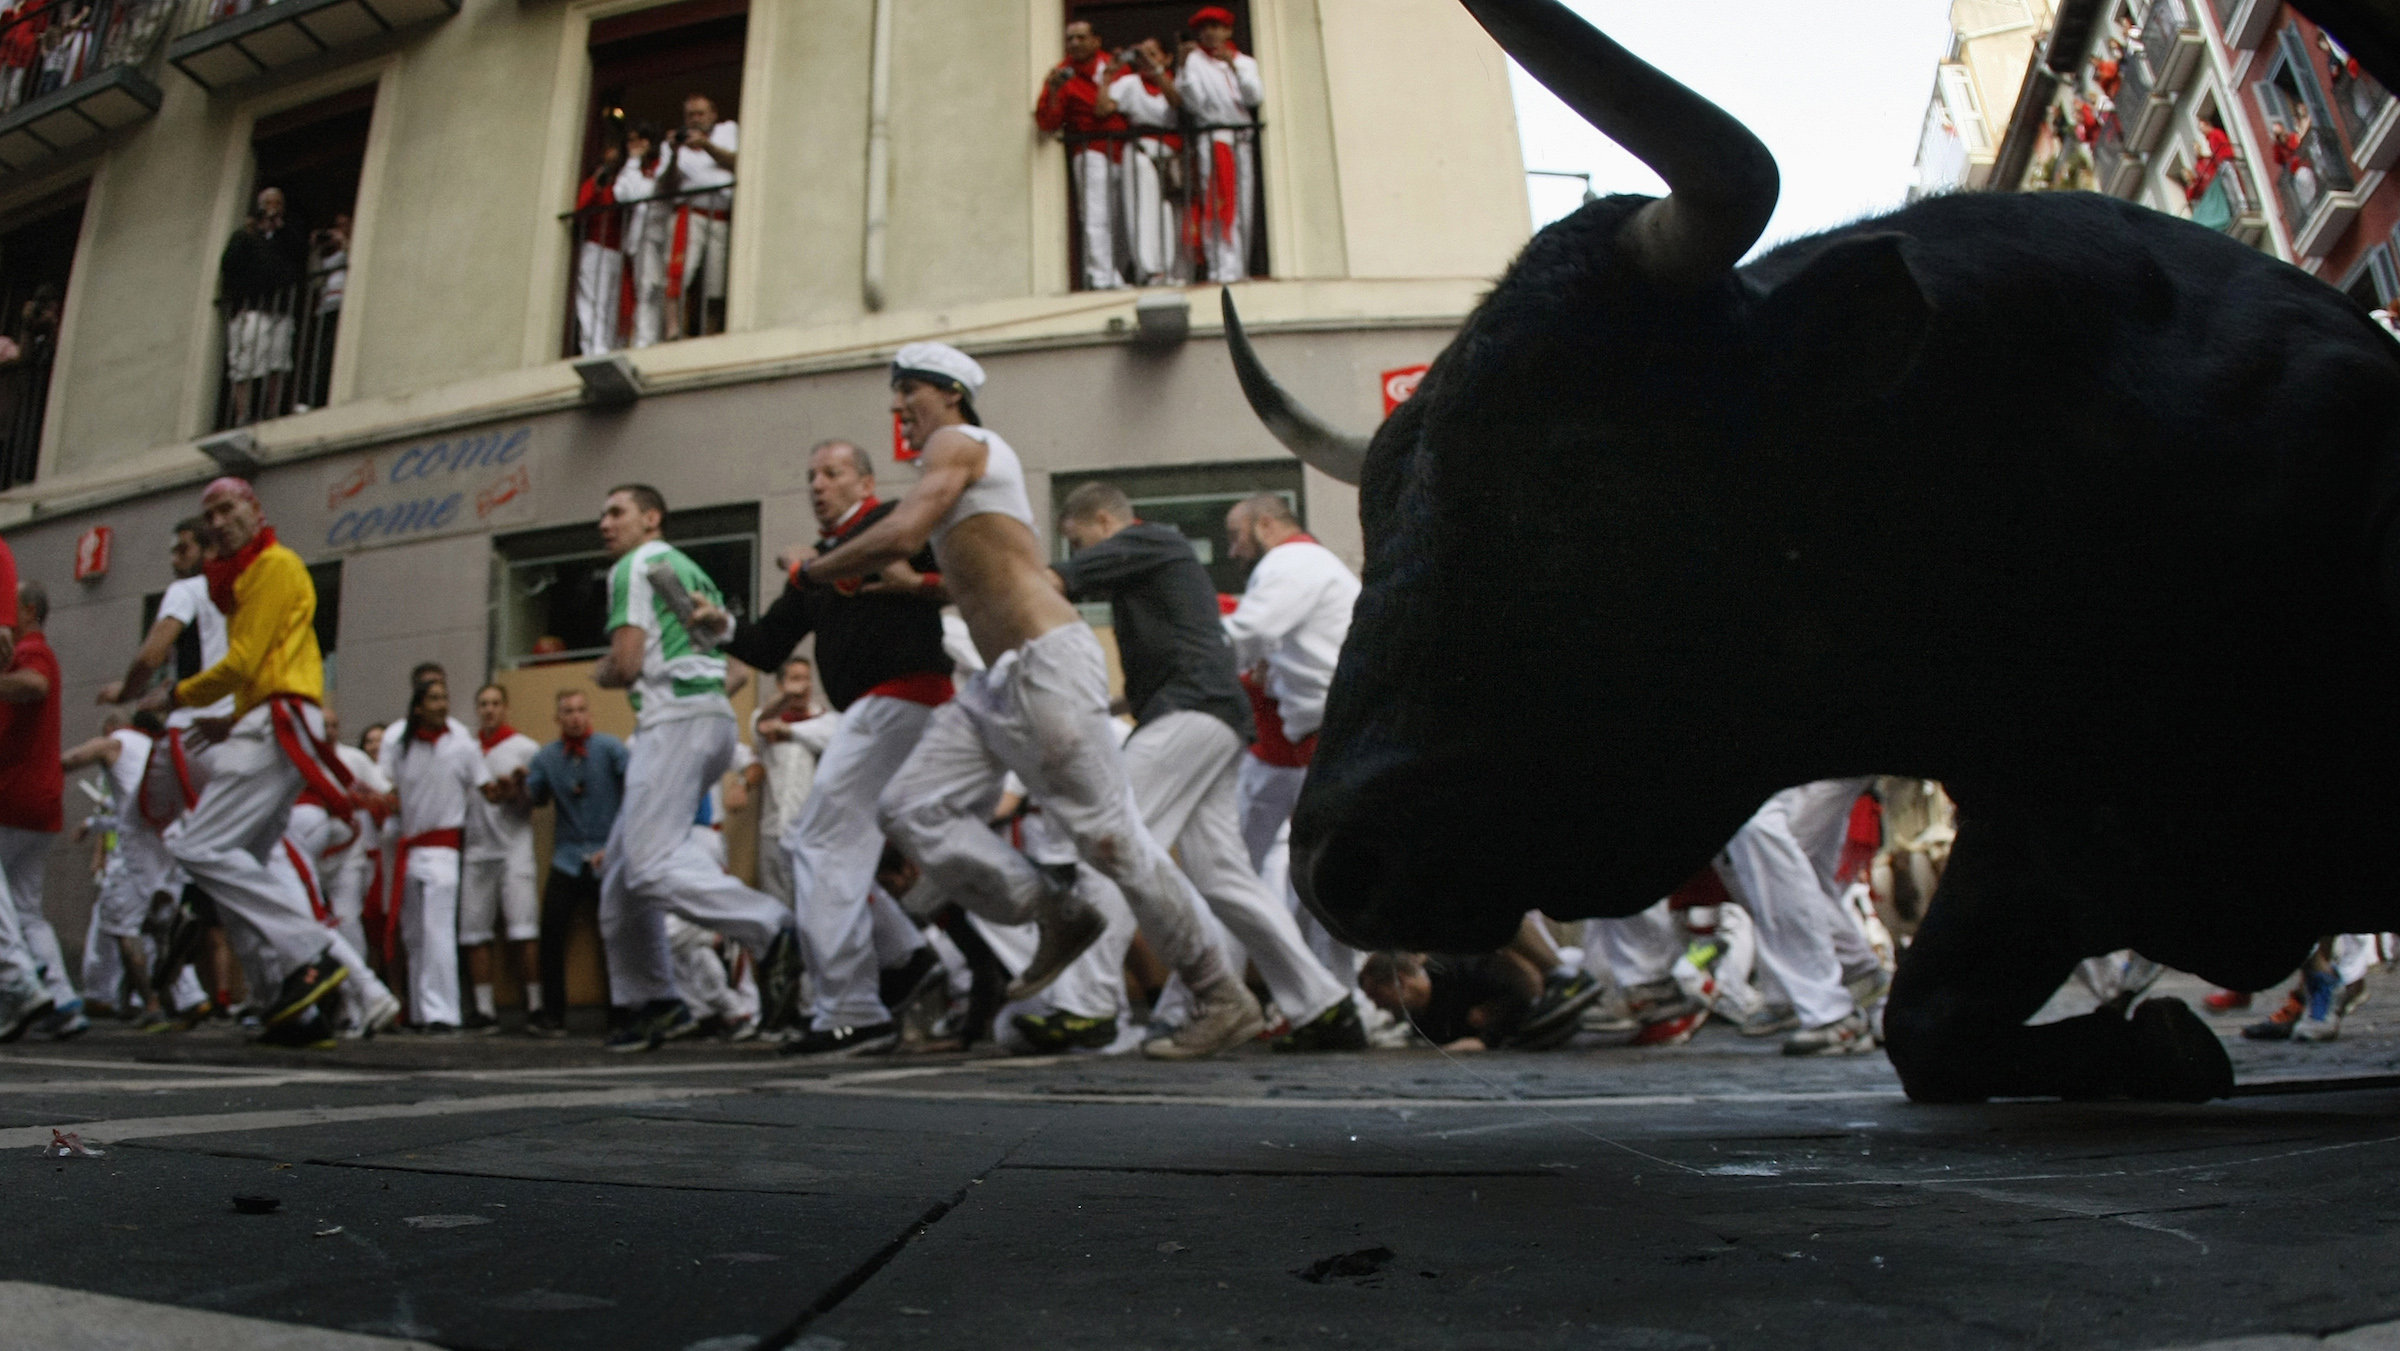 A Dolores Aguirre fighting bull falls at the Estafeta corner, during the second running of the bulls of the San Fermin festival in Pamplona July 8, 2014. Two runners were hospitalized following a run that lasted two minutes and twenty seconds, according to local media. REUTERS/Eloy Alonso (SPAIN - Tags: SOCIETY ANIMALS) - RTR3XK7E